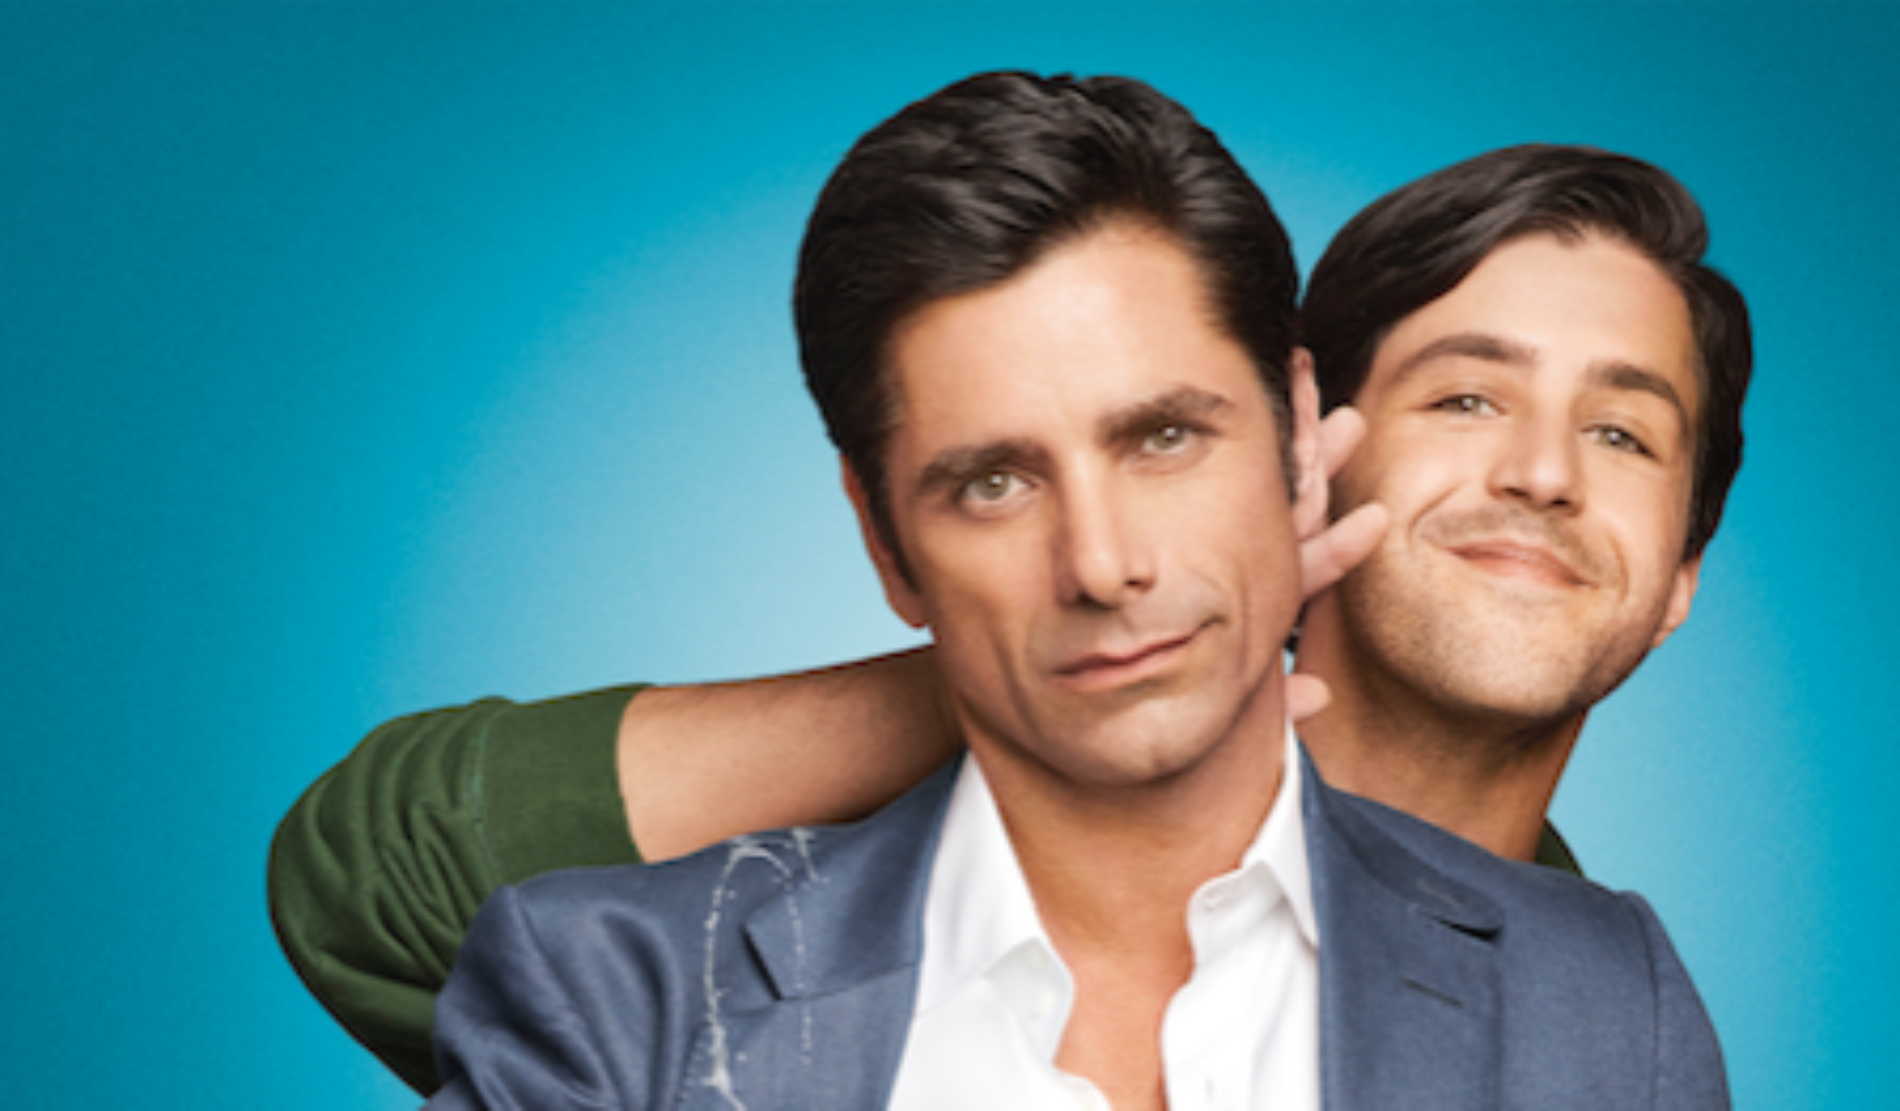 CANAL SONY ESTRENA GRANDFATHERED CON JOHN STAMOS